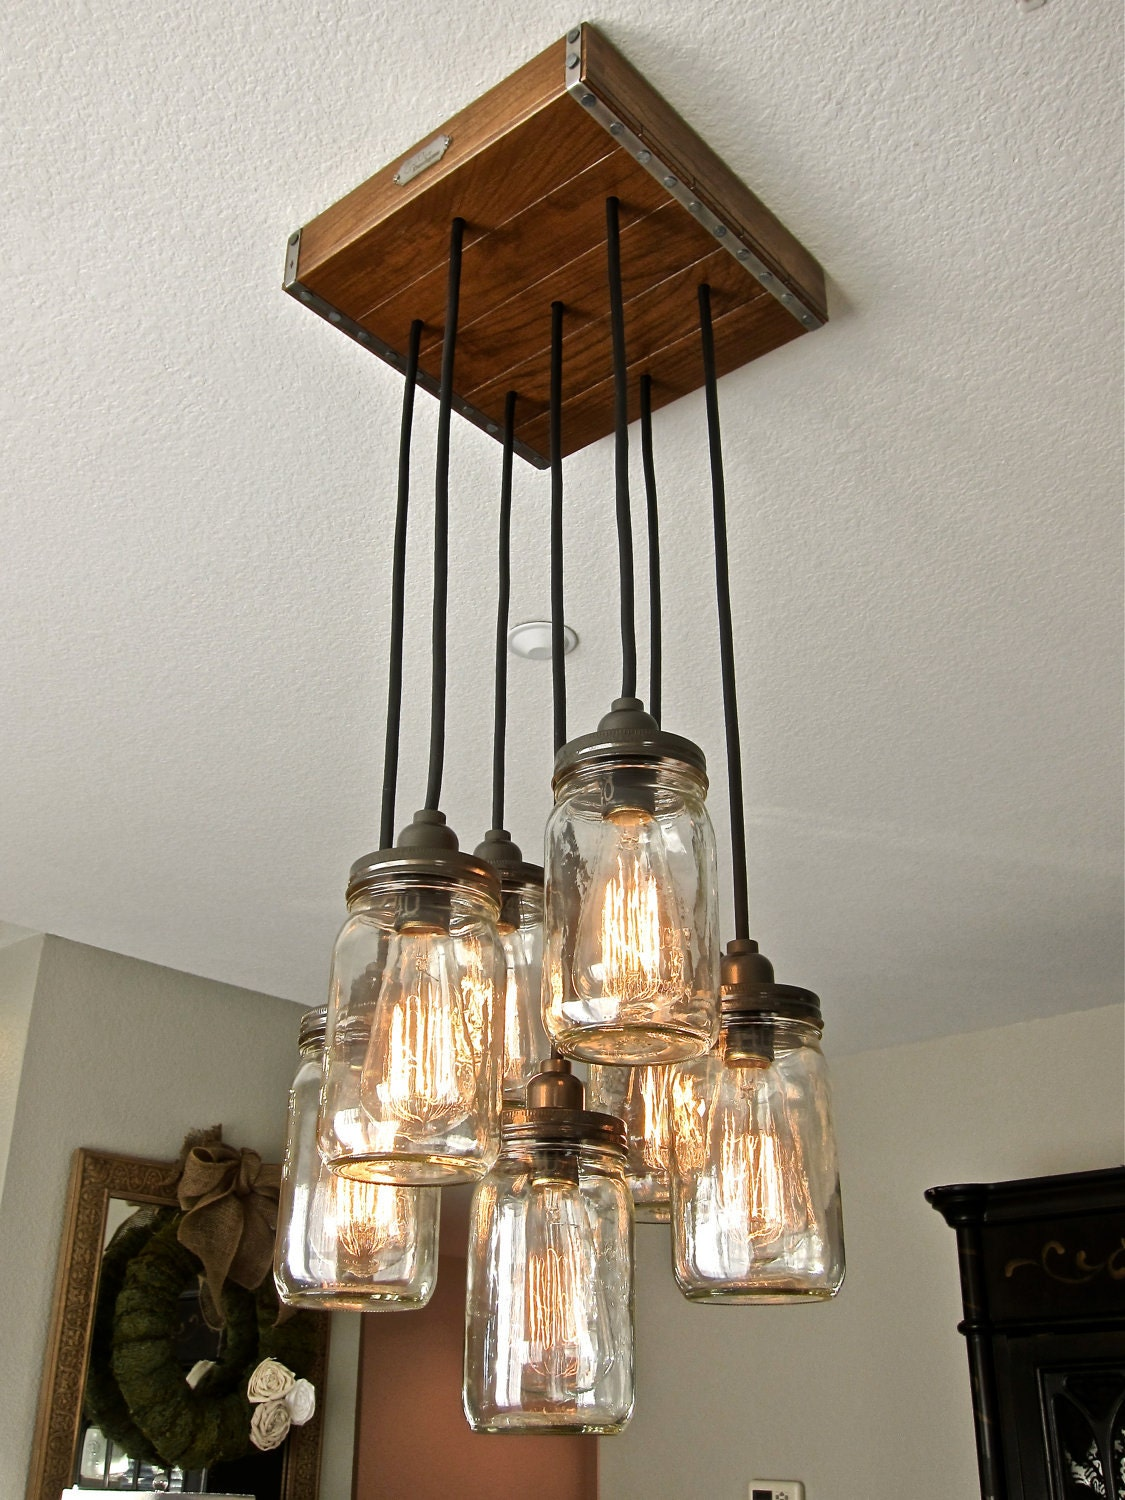 diy mason jar hanging chandelier mason jar pendant chandelier build diy mason jar chandelier